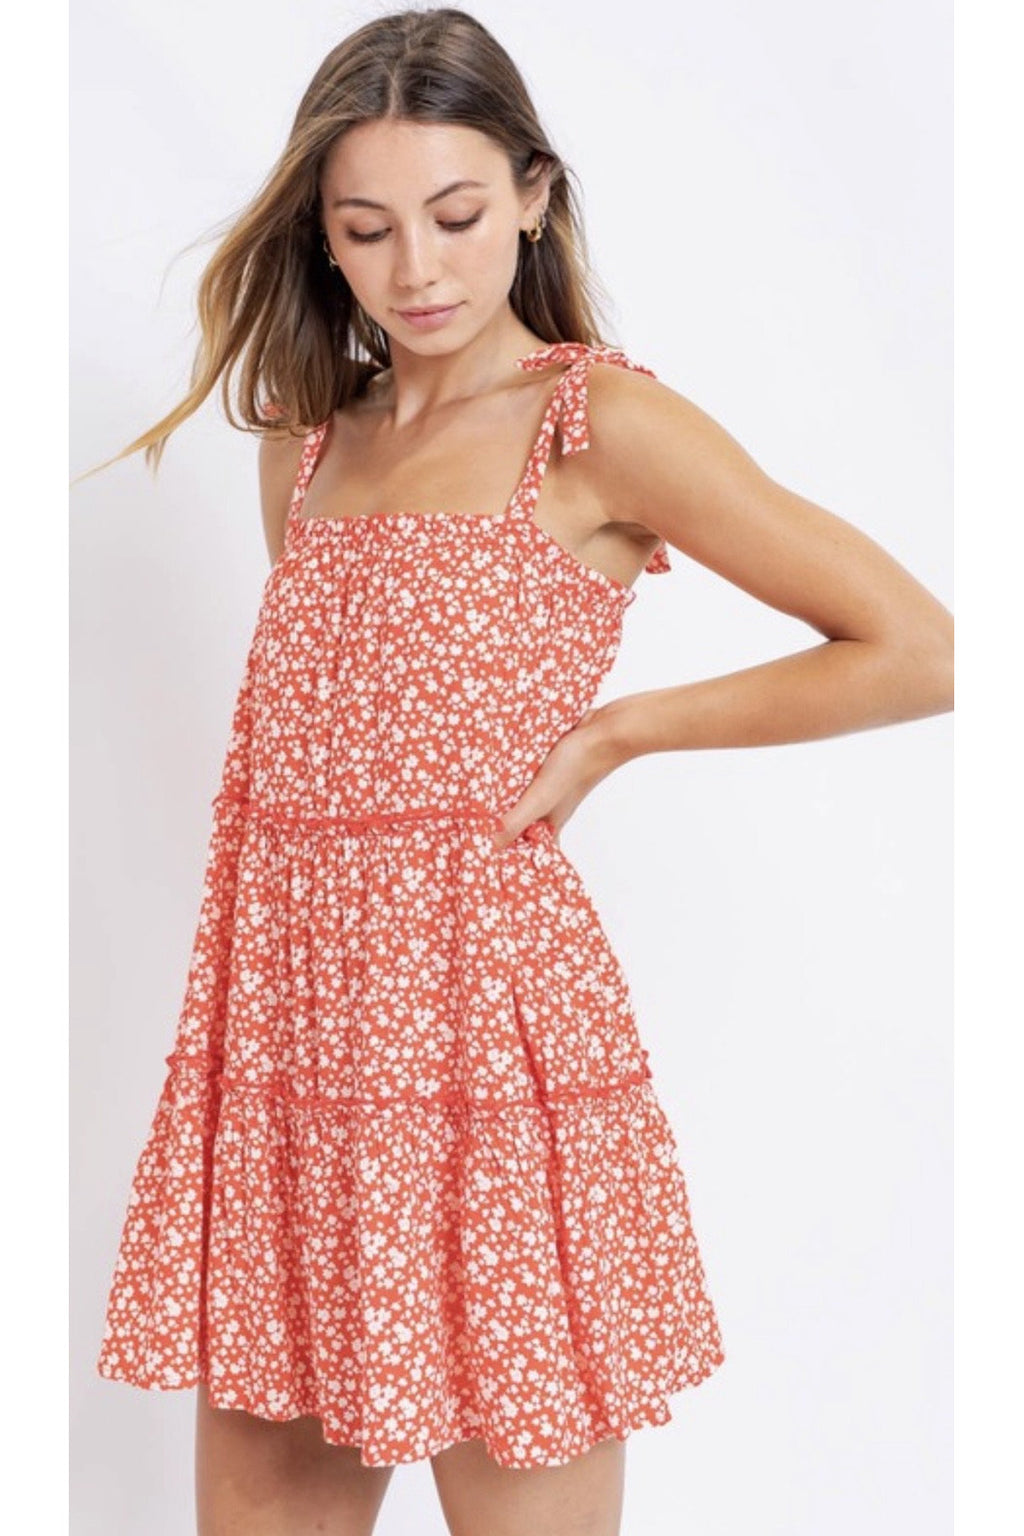 Taylor Tie Top Dress $48